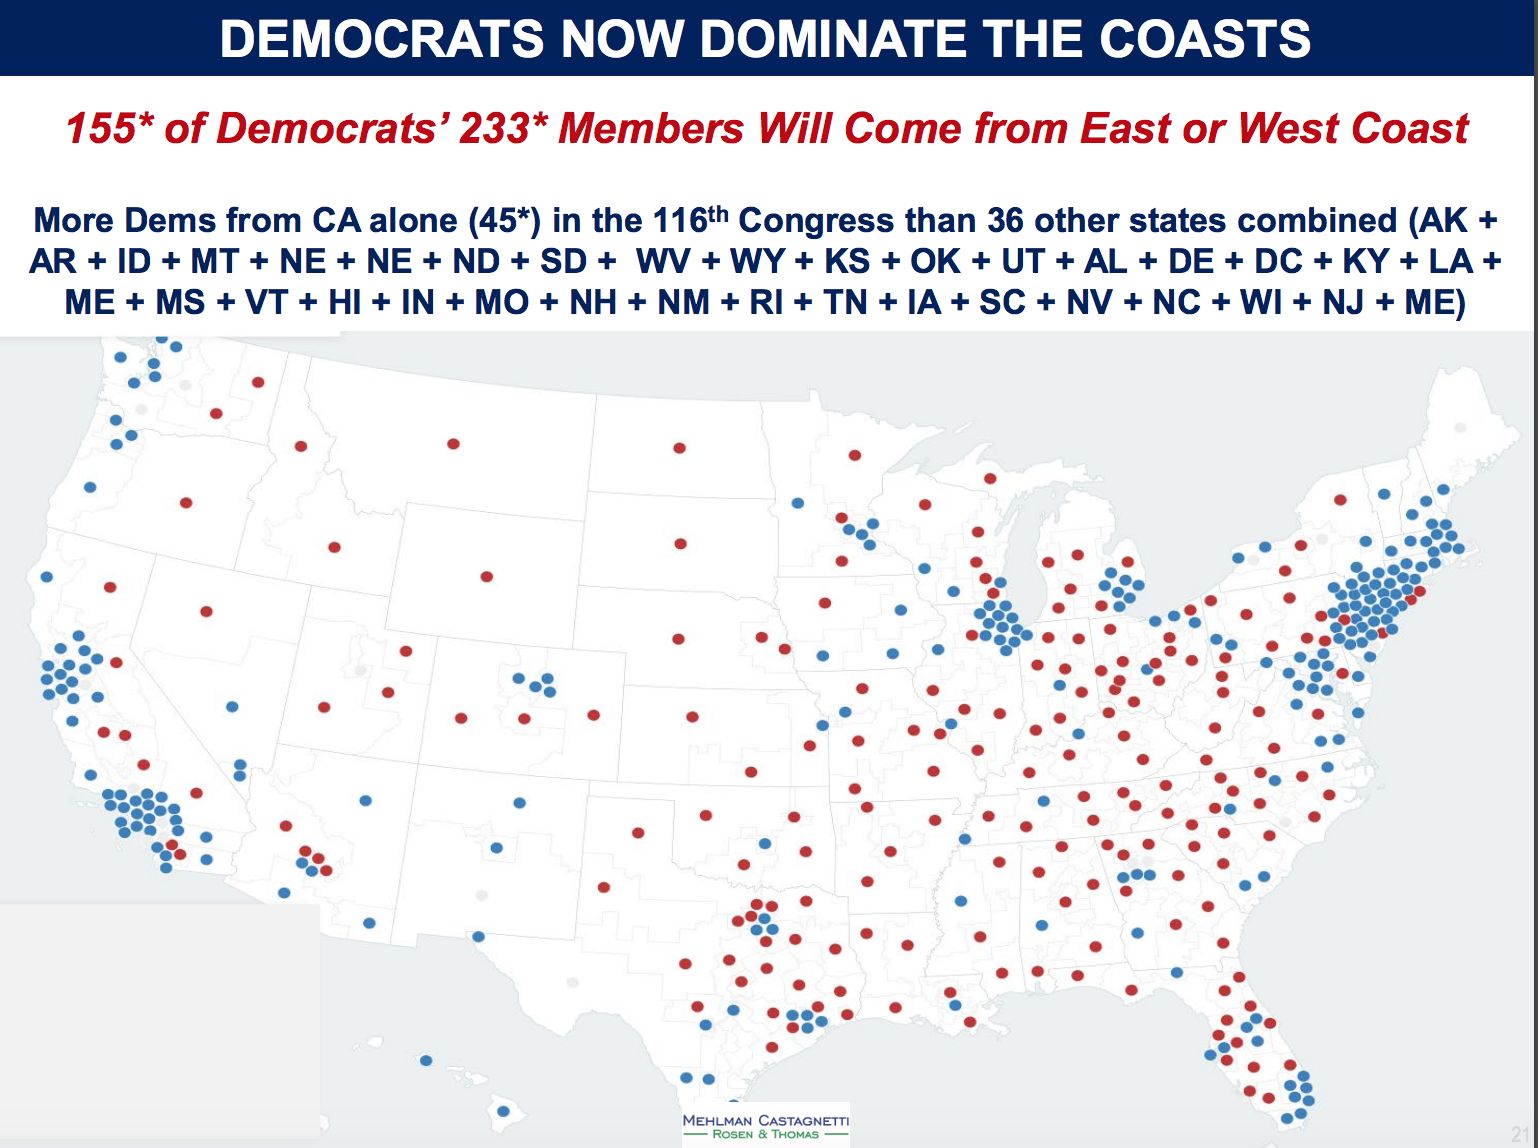 Democrats Now Dominate the Coasts